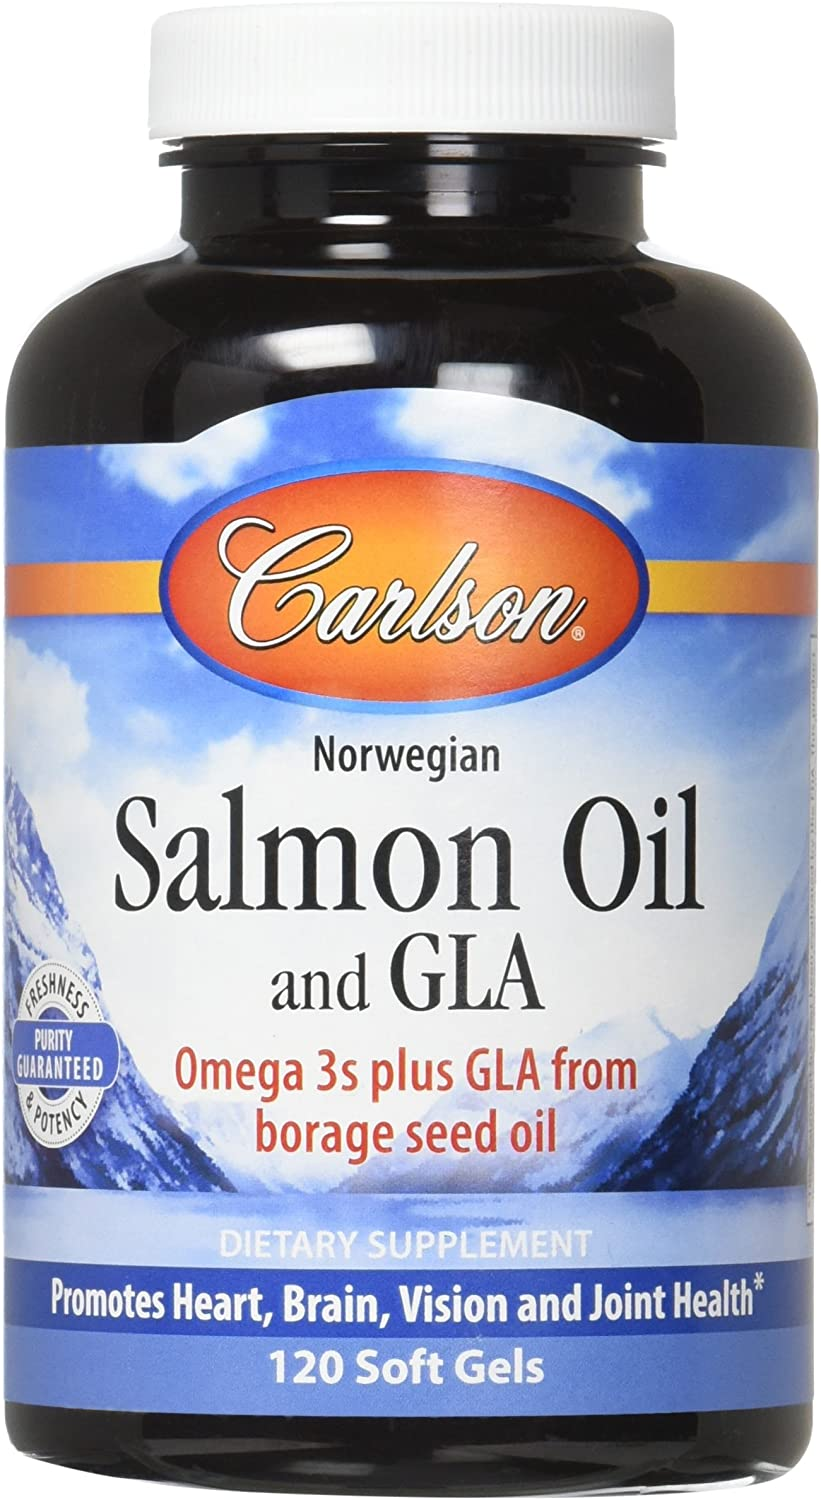 Carlson Salmon Oil List price And Softgels 120 Store GLA